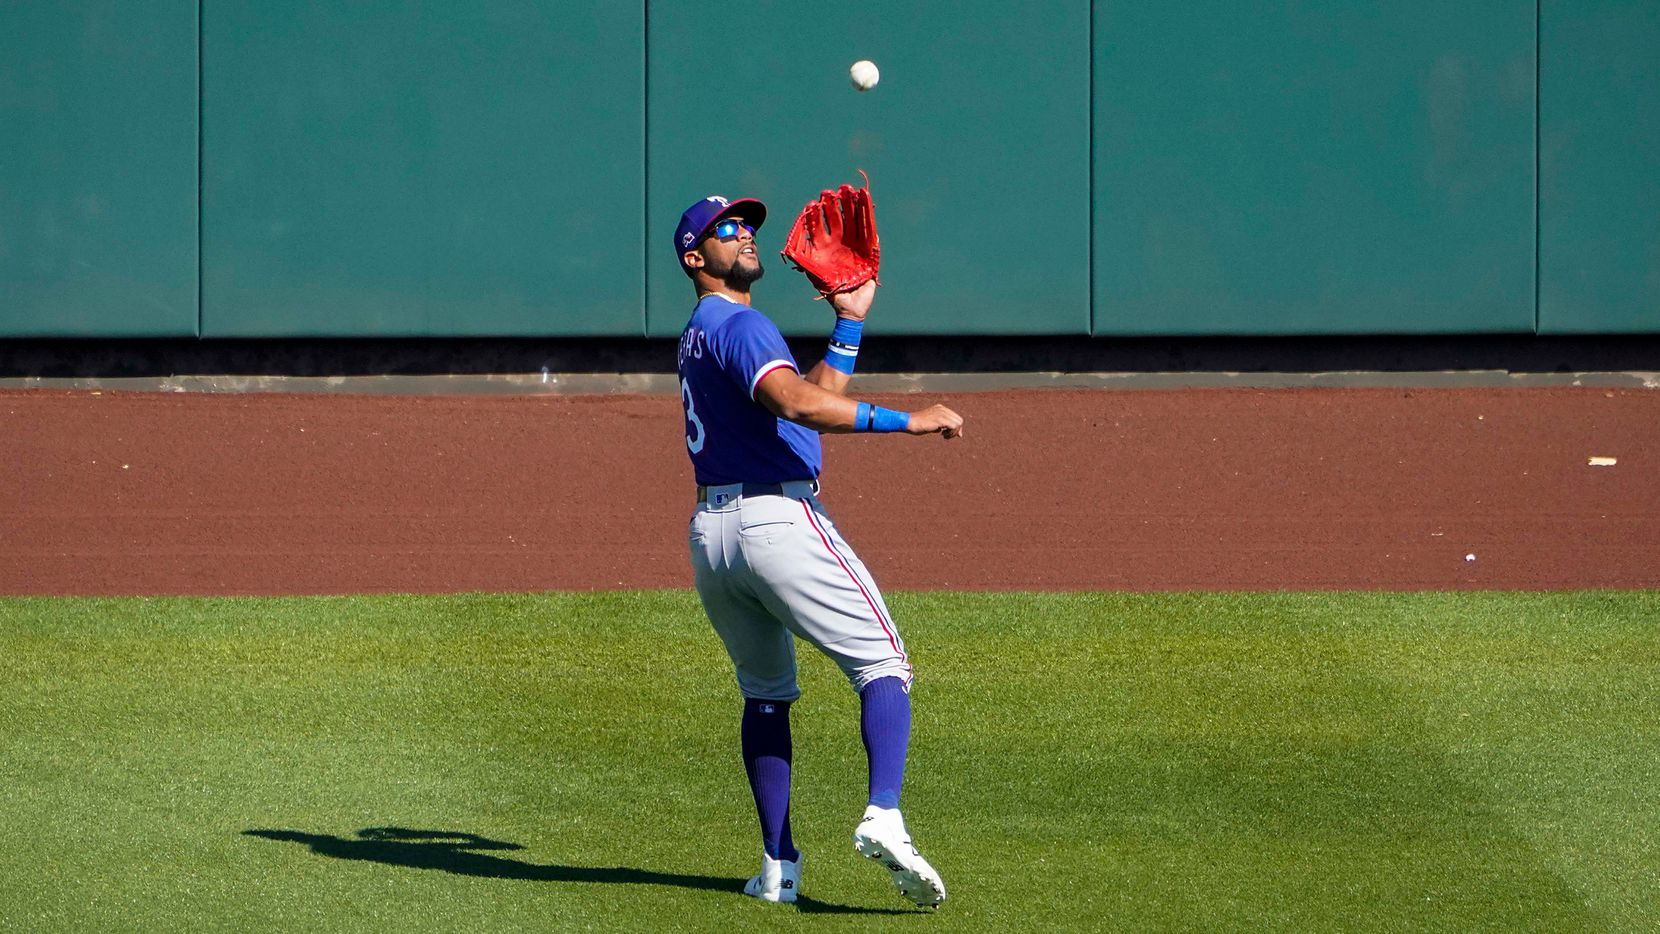 Texas Rangers center fielder Leody Taveras makes a catch on a fly ball by Arizona Diamondbacks first baseman Pavin Smith during the fifth inning of a spring training game at Salt River Fields at Talking Stick on Saturday, March 6, 2021, in Scottsdale, Ariz.